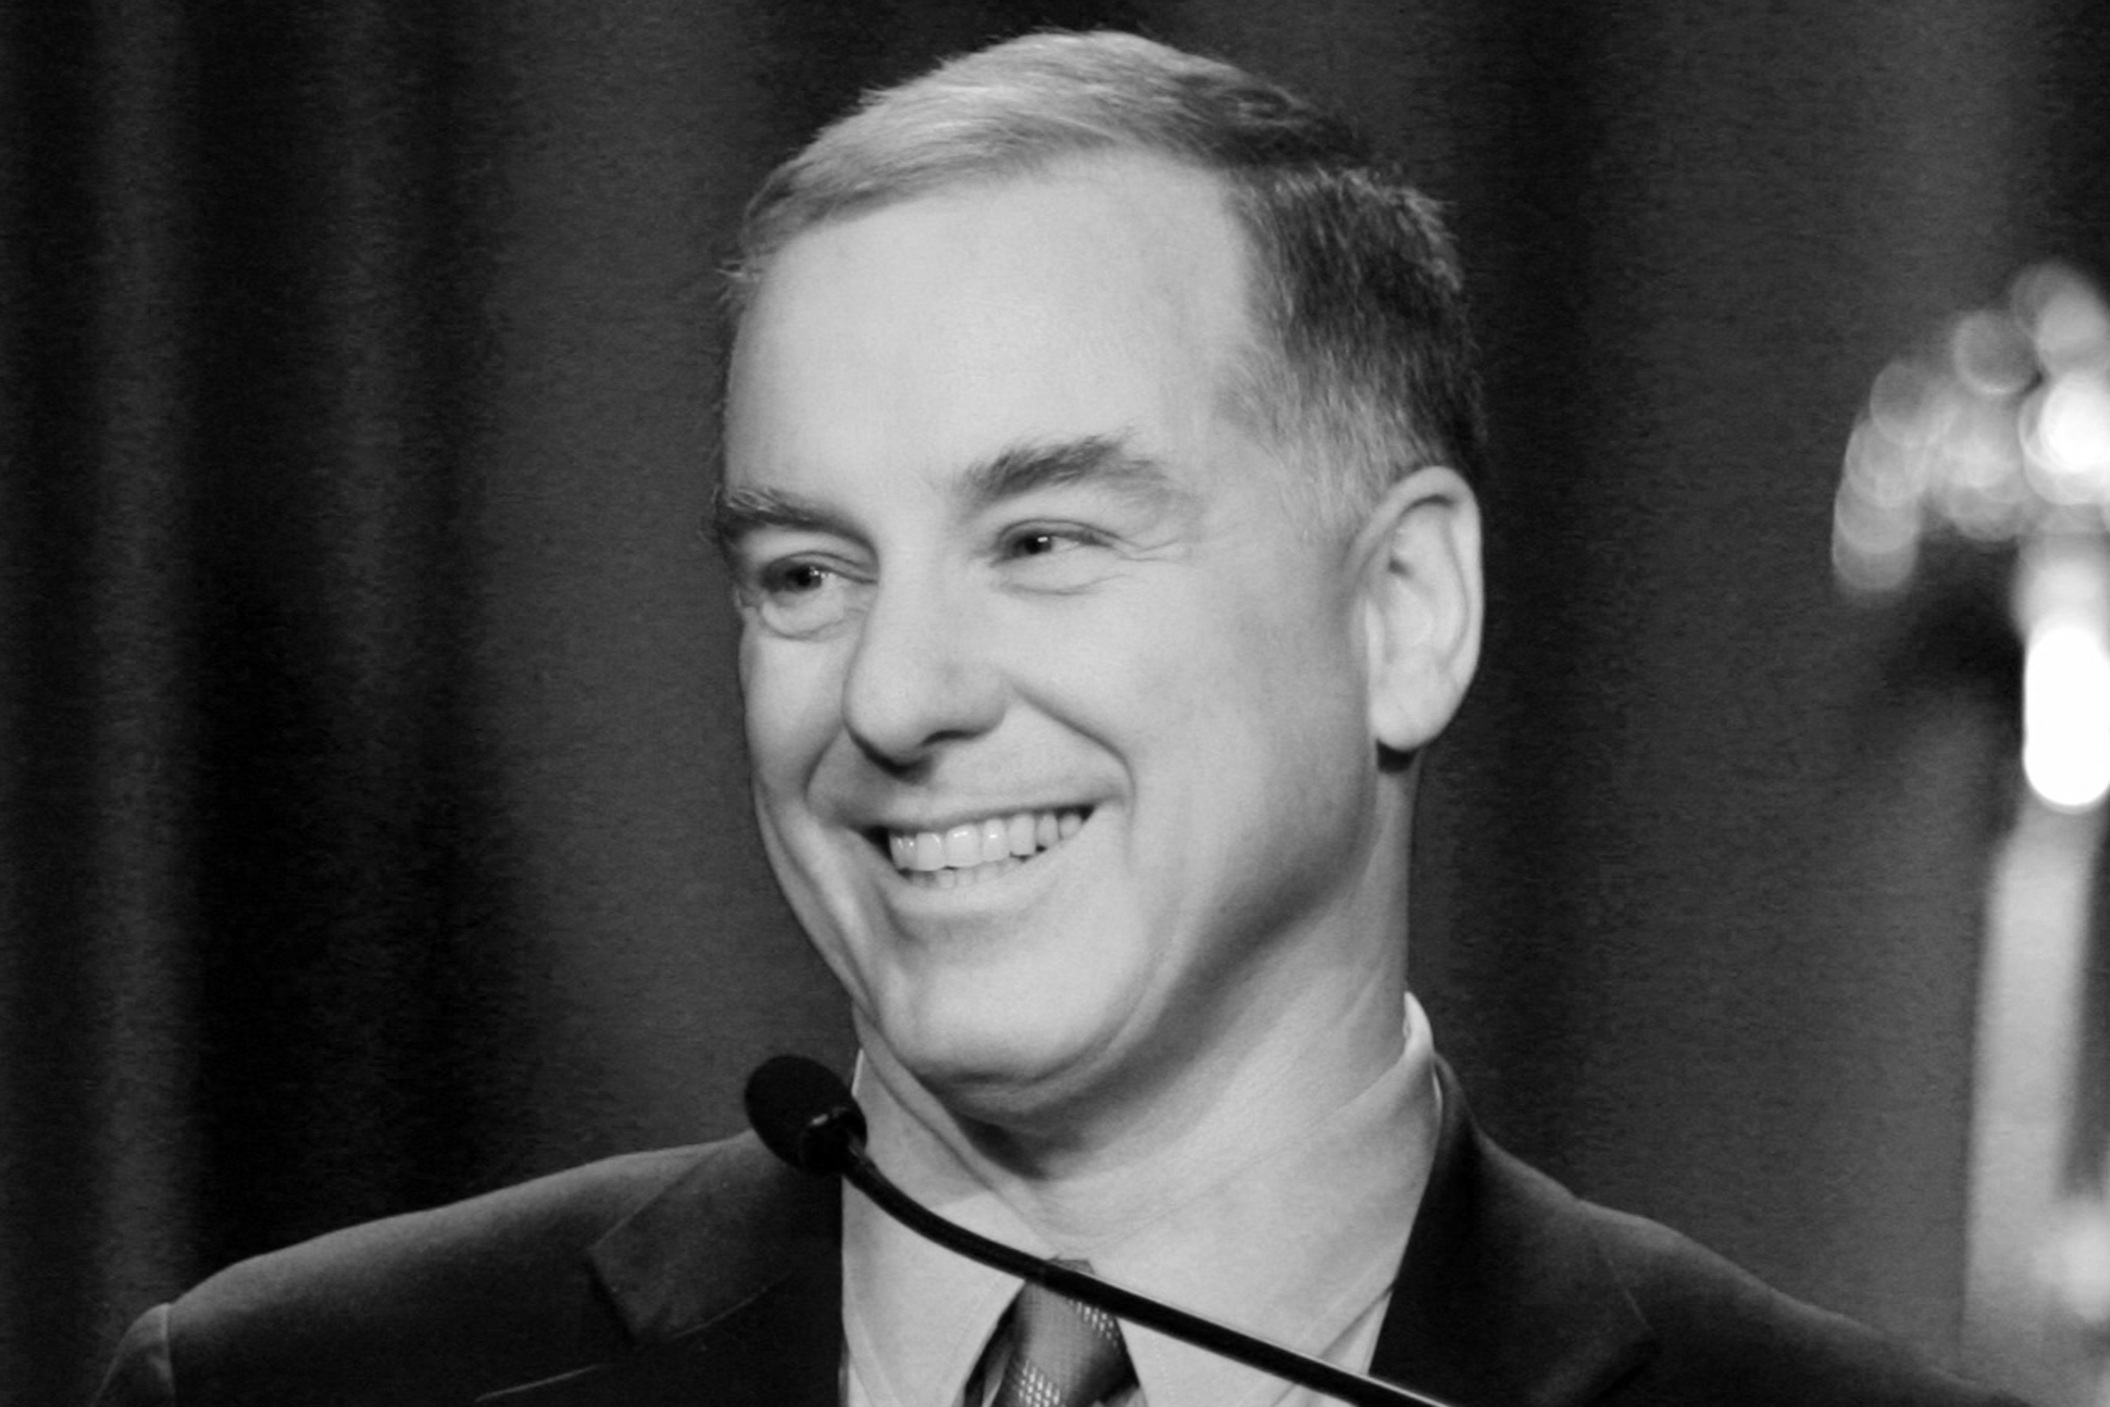 Governor Howard Dean - Former Governor of Vermont, former DNC Chairman